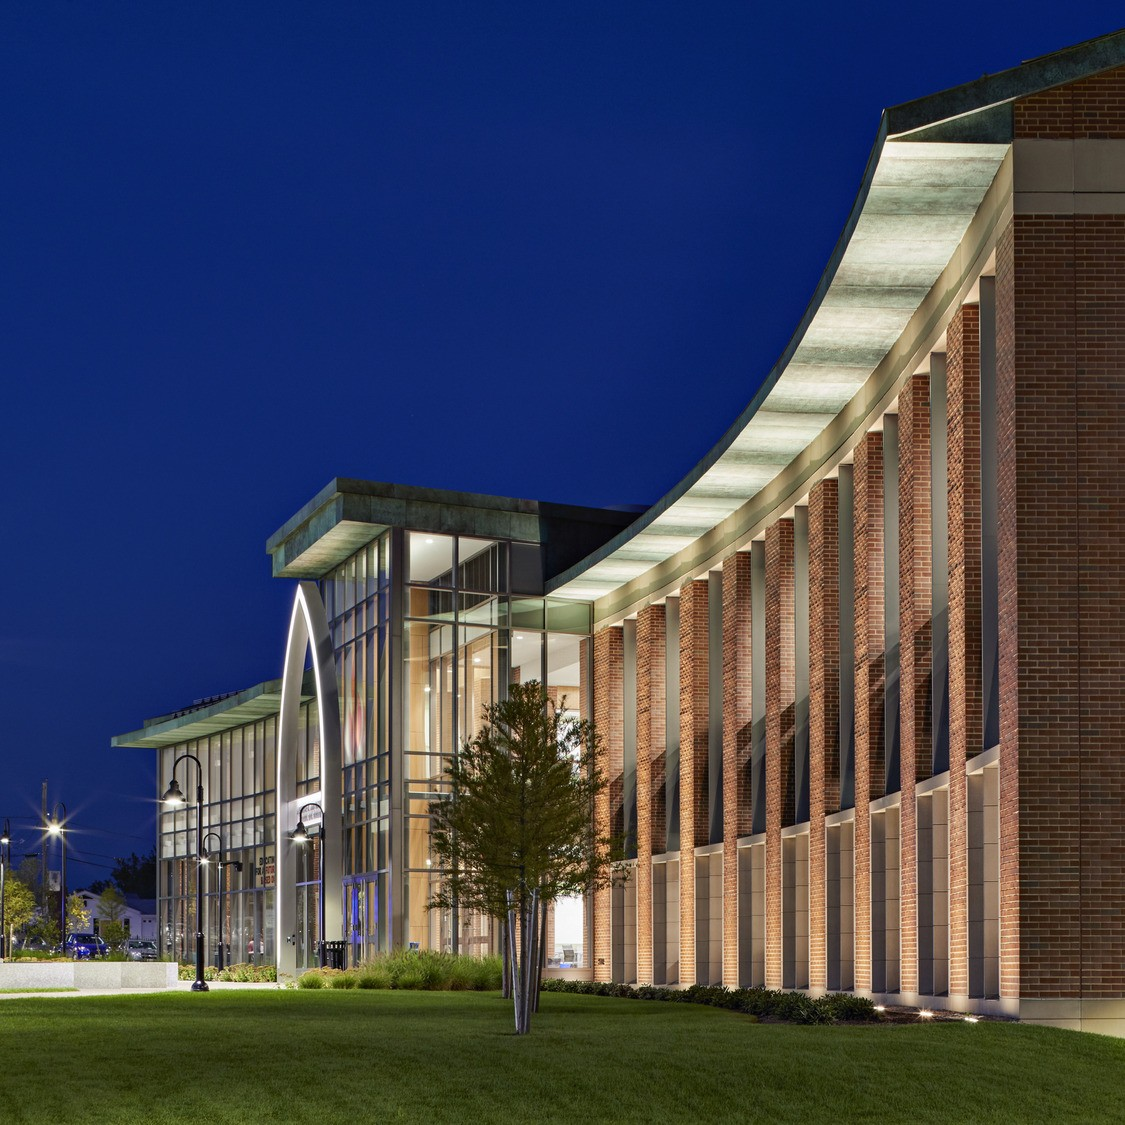 Exterior shot of the Providence College School of Business, the Arthur F. and Patricia Ryan Center for Business Studies.